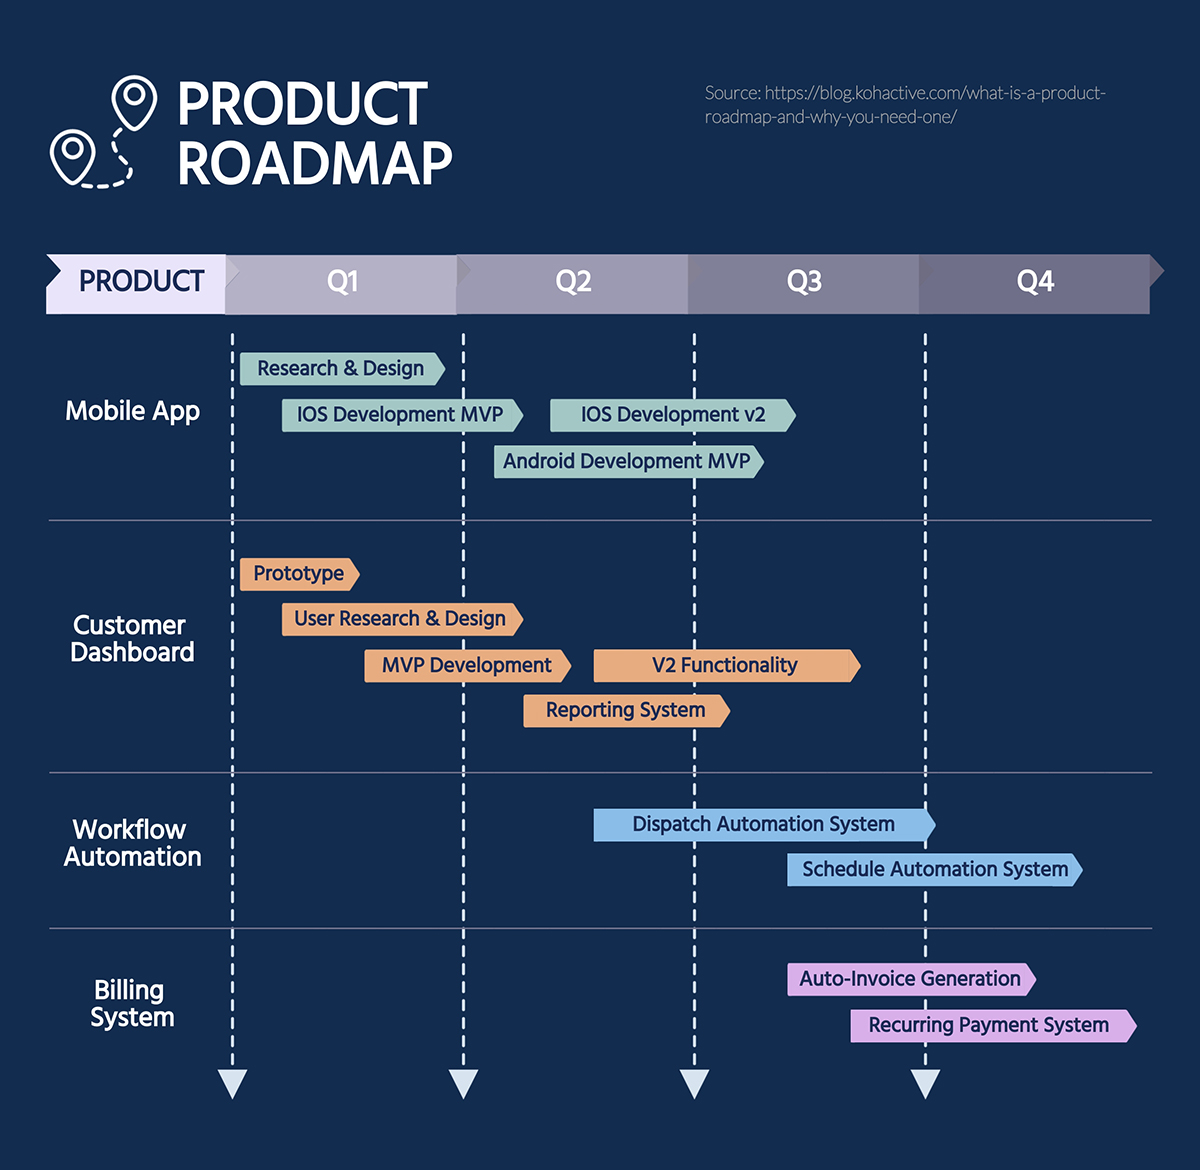 Roadmap template in excel (table of contents) explanation of roadmap template in excel; 11 Downloadable Roadmap Templates For Various Use Cases